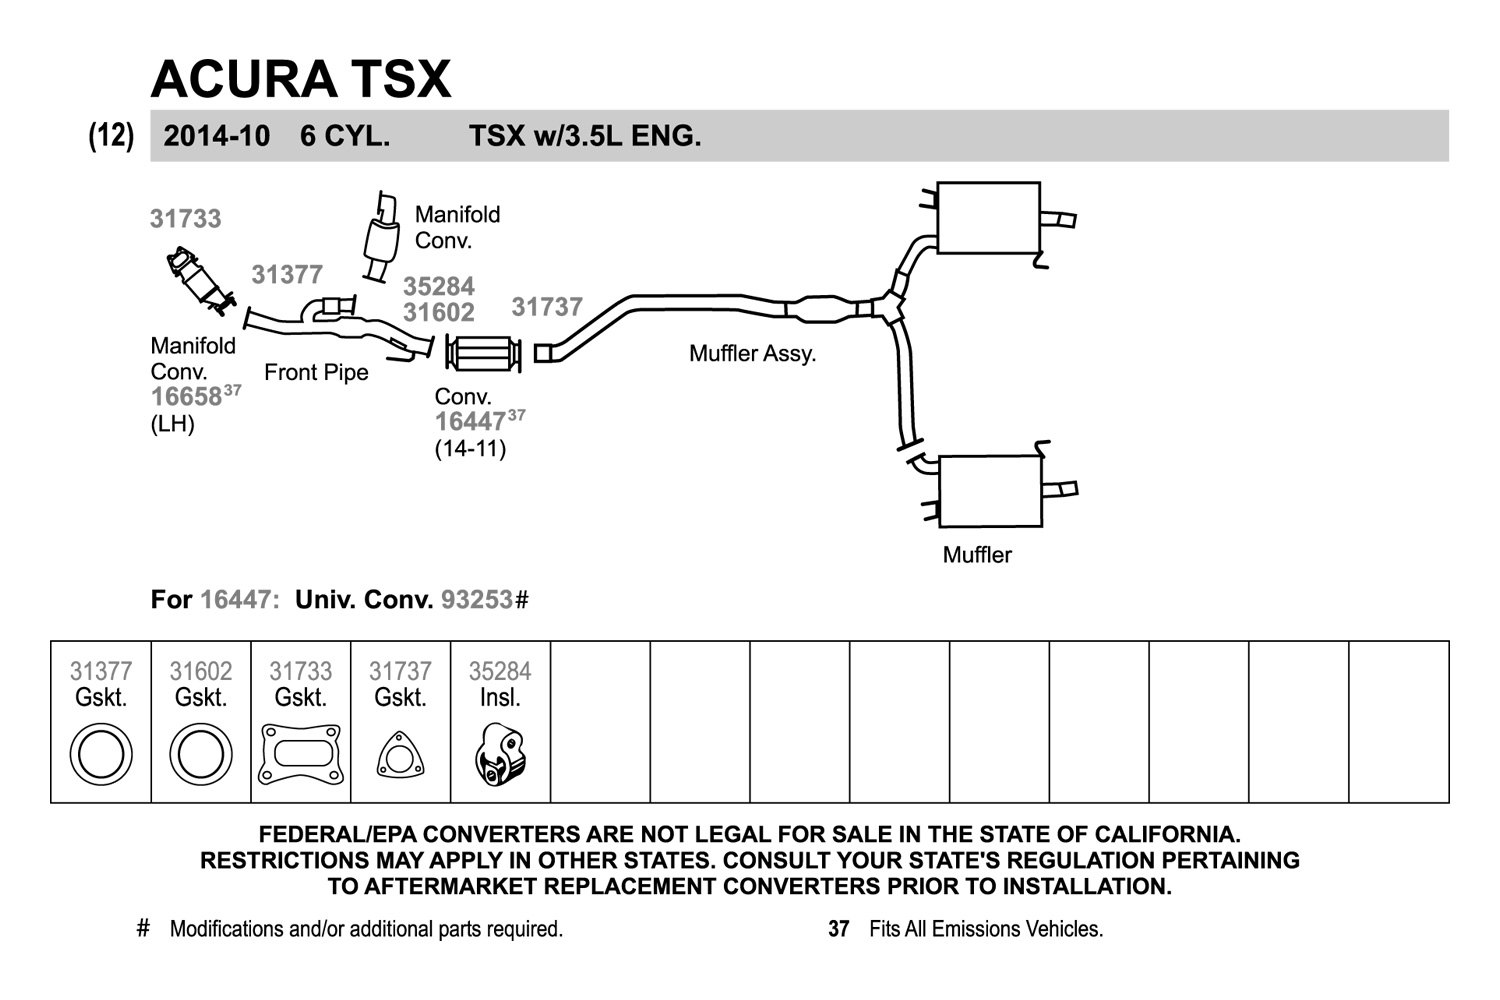 Acura Tsx Exhaust Diagram Data Wiring Diagrams - Acura tsx aftermarket parts